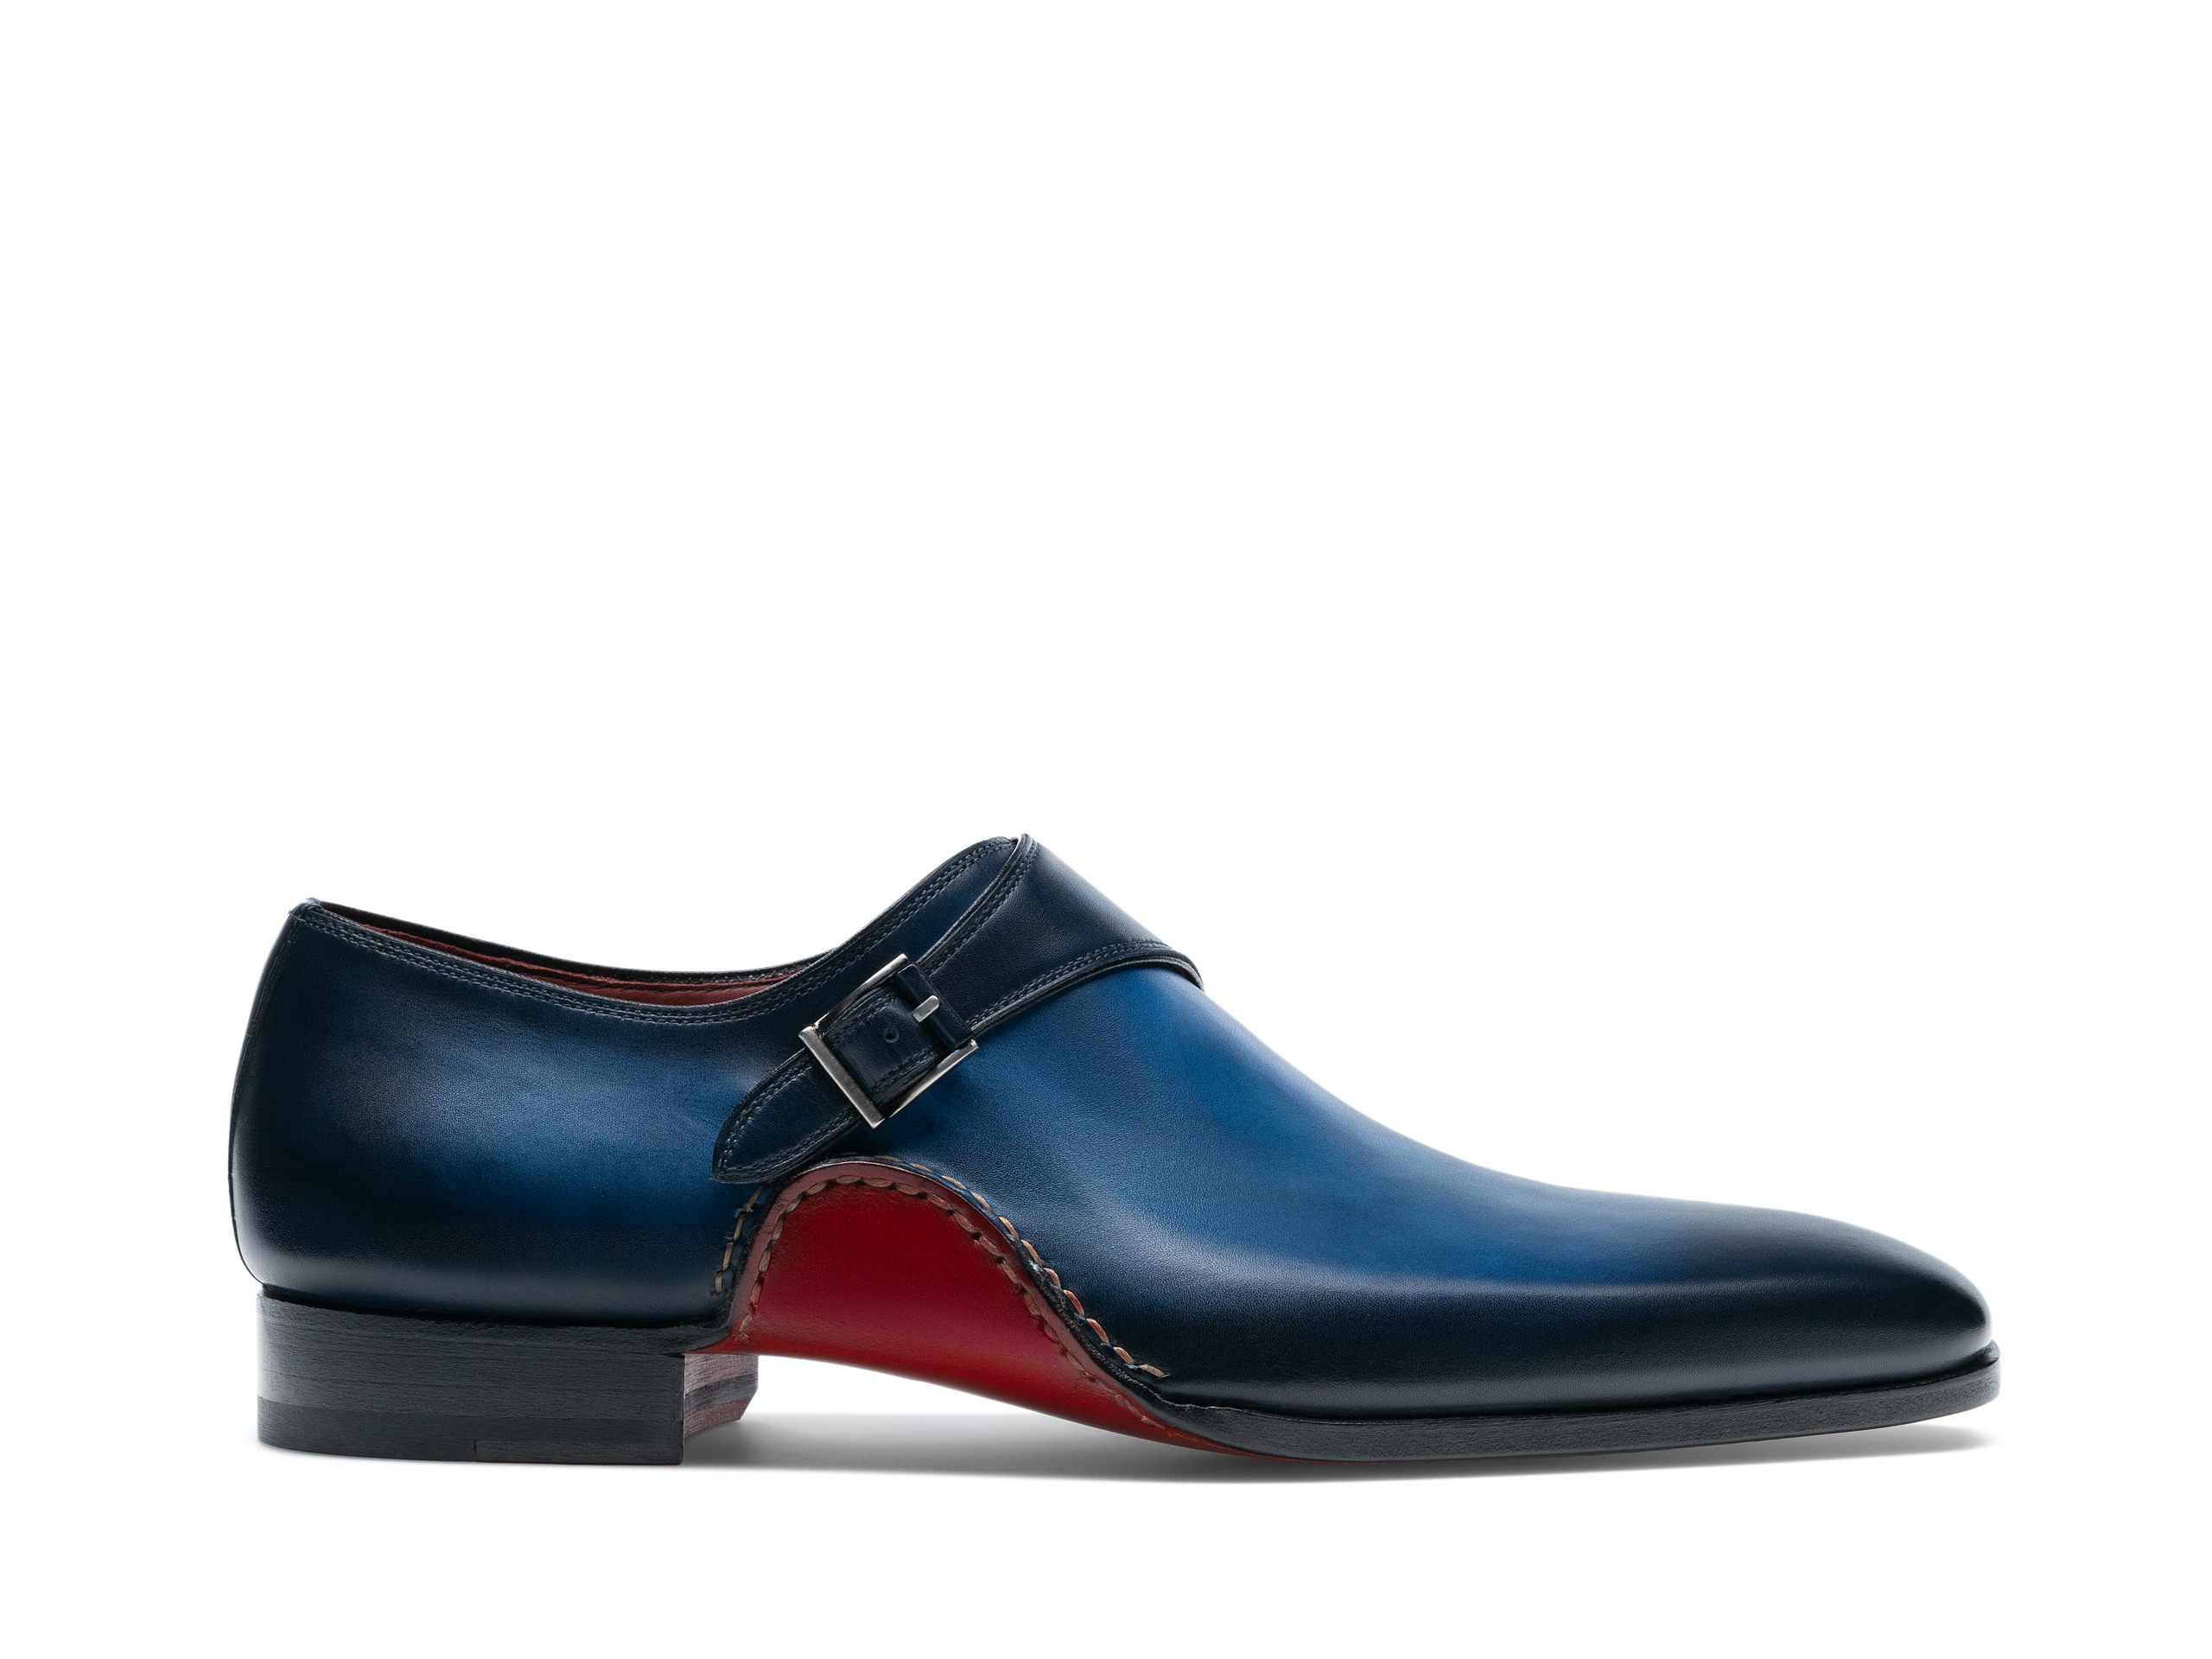 Side Profile of Carrera Navy Dress Shoes